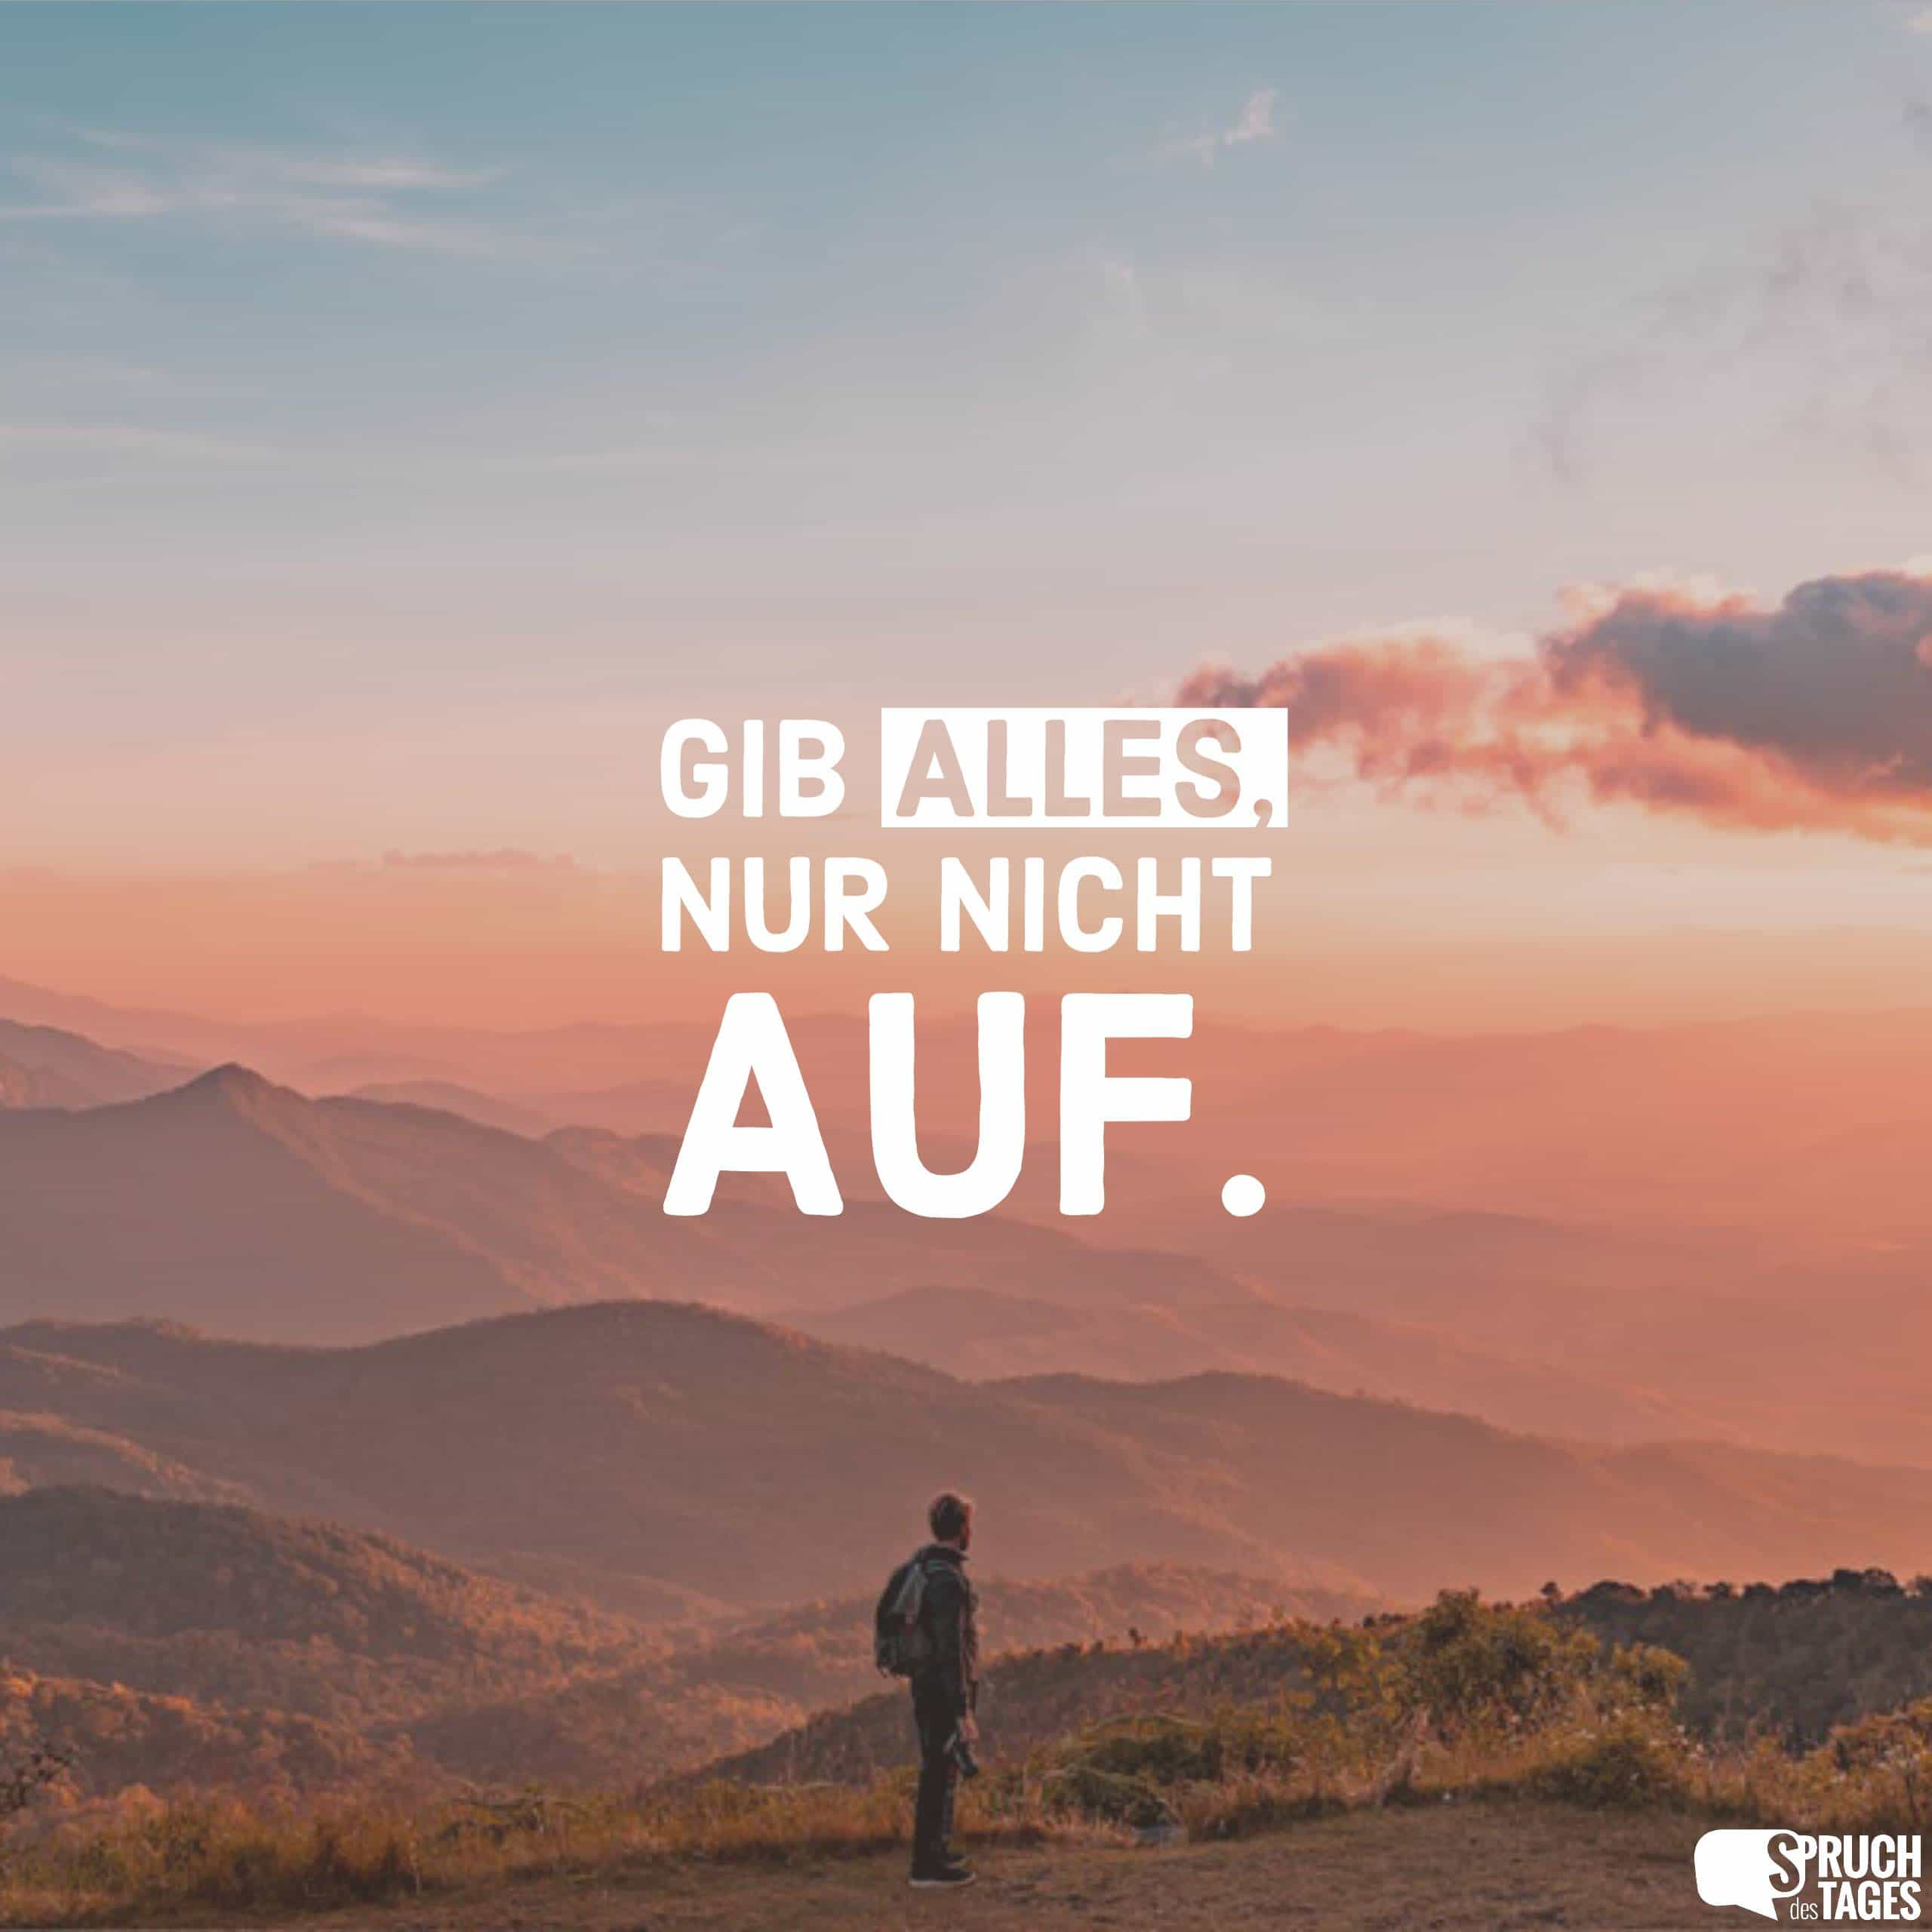 night auf deutsch